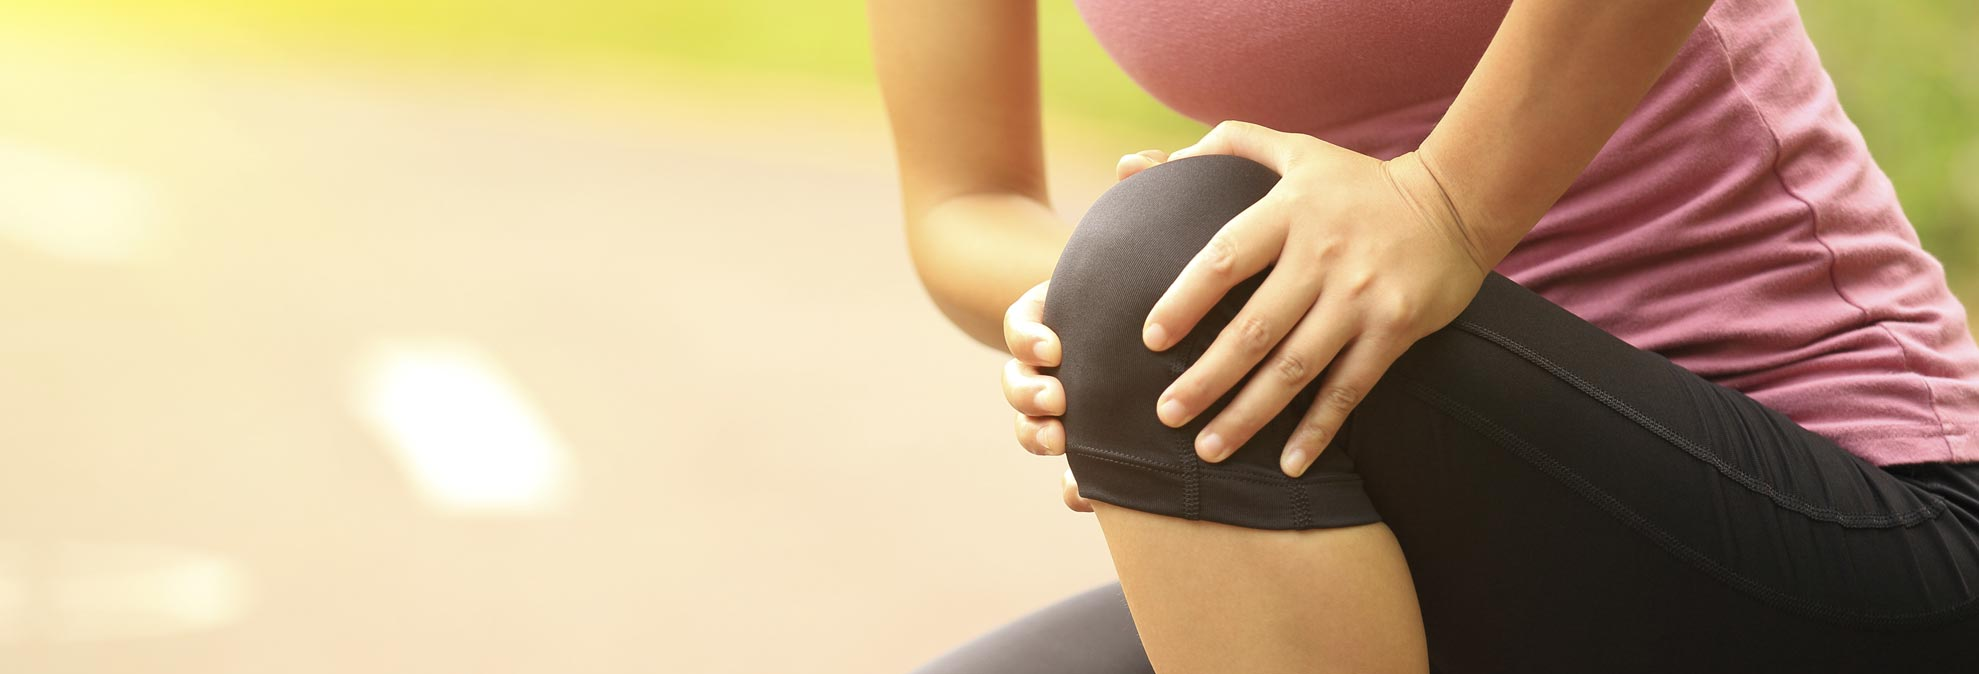 Best Ways To Treat Joint Pain Consumer Reports